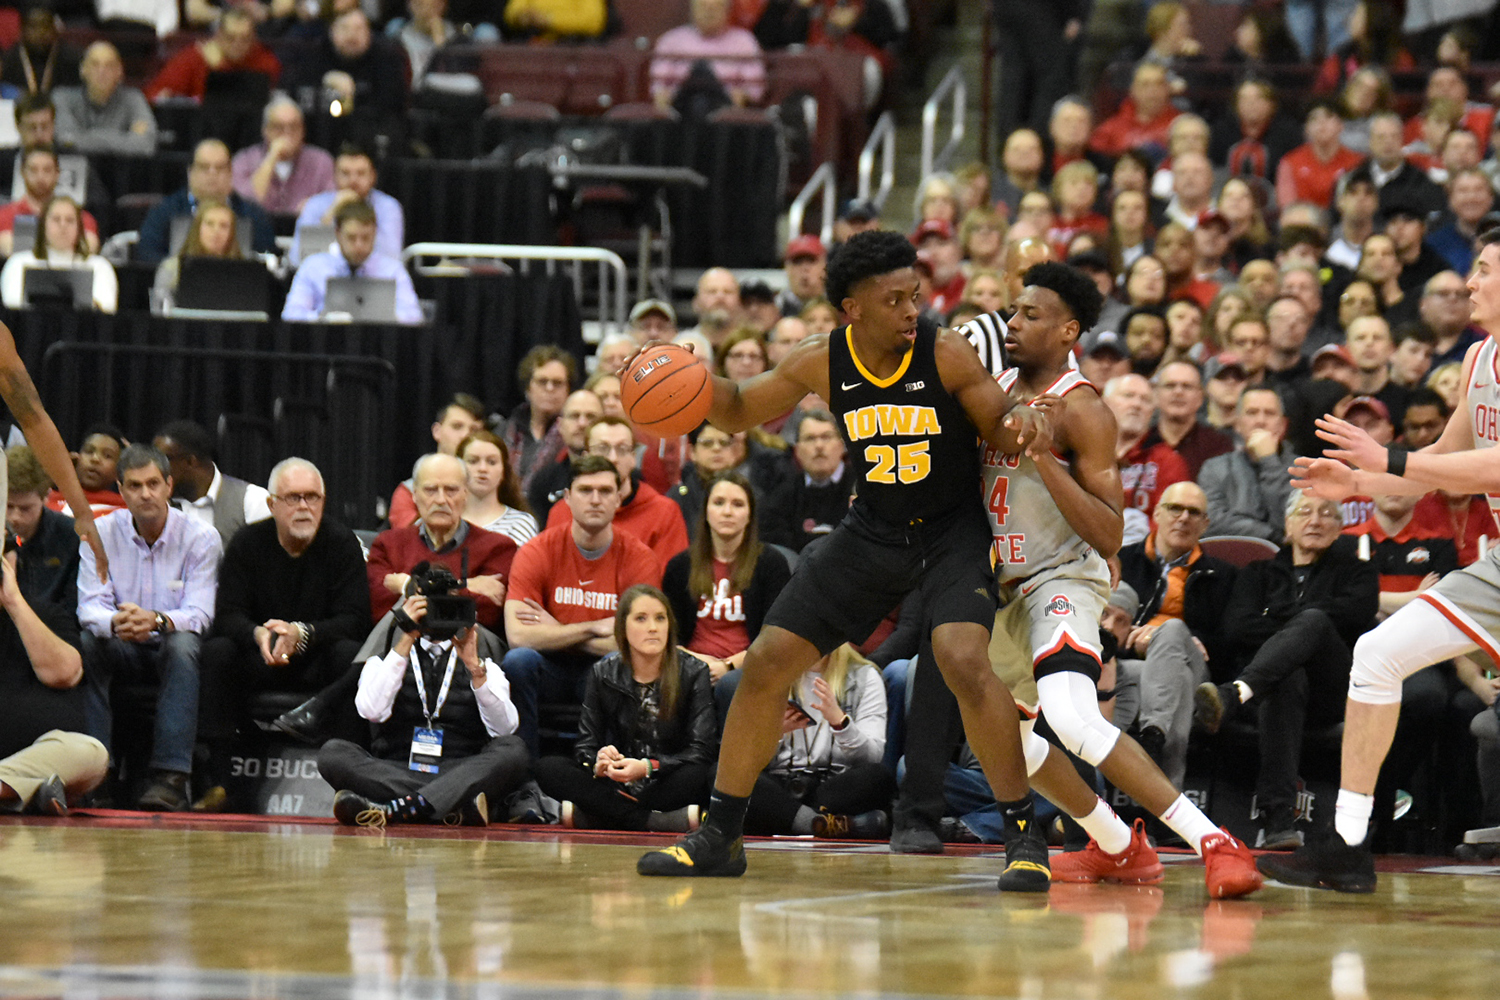 Tyler Cook dribbles in the post during Ohio State's 90-70 win over No. 22 Iowa on Feb. 26 (Cori Wade/The Lantern).